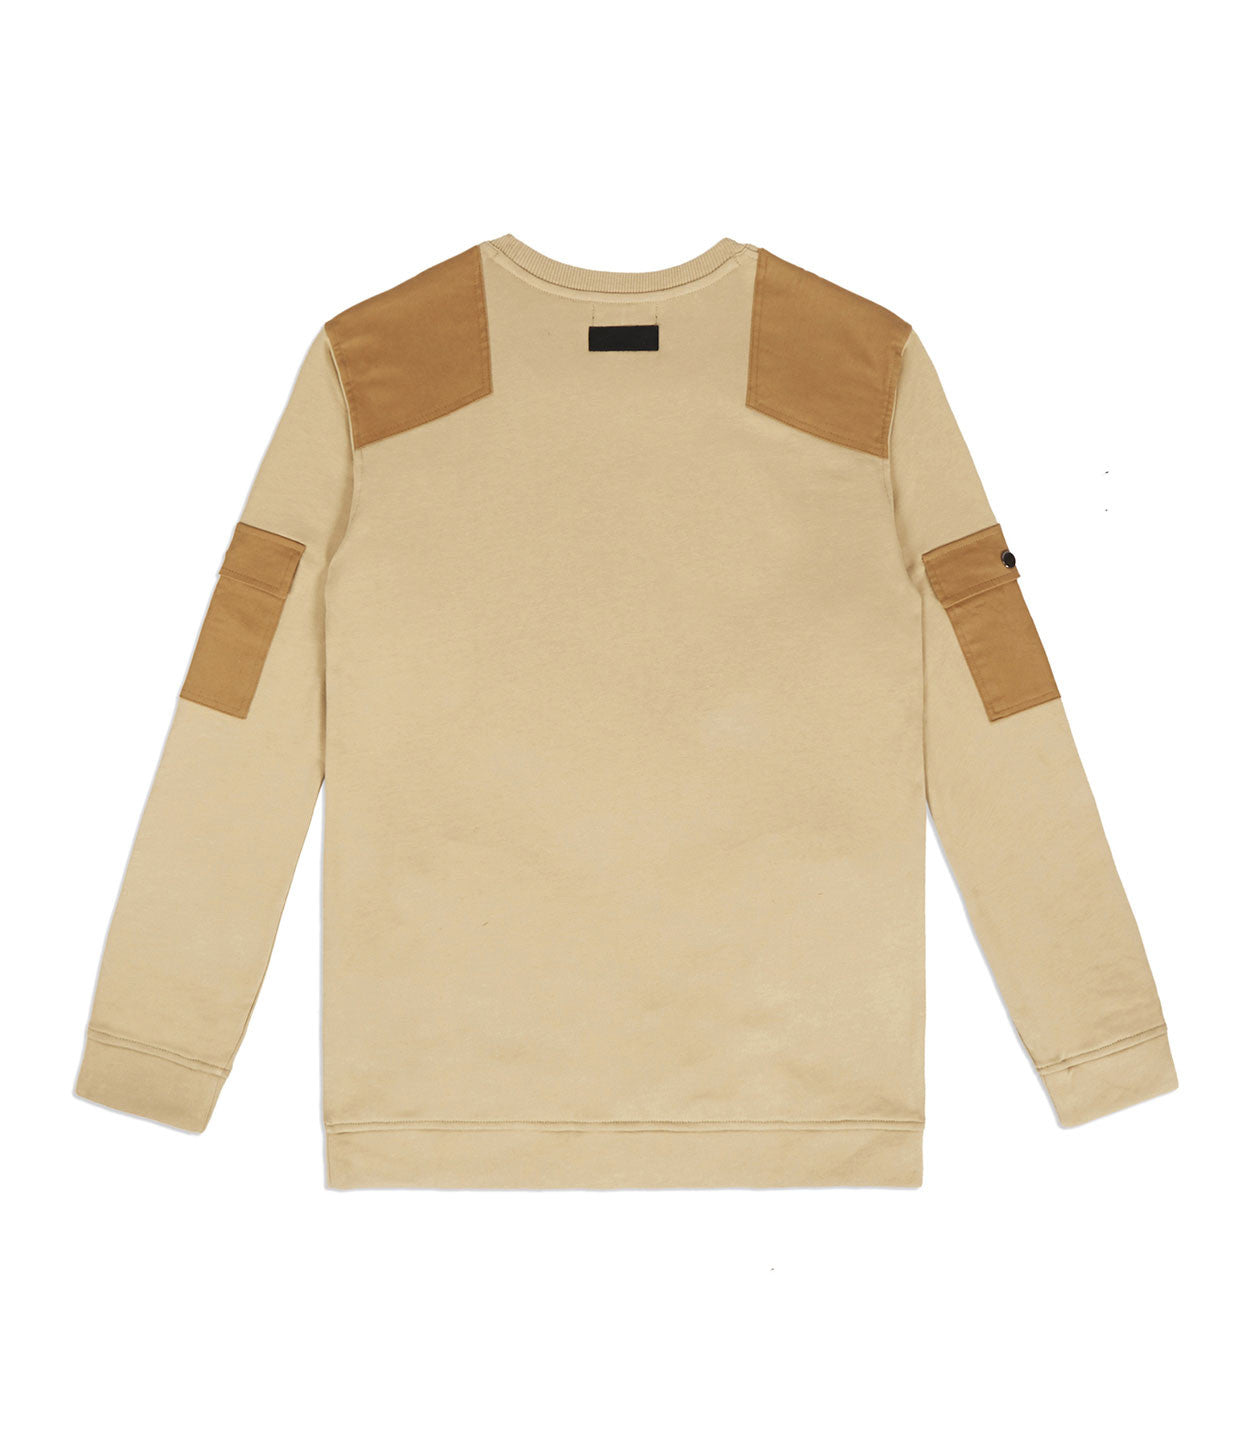 SW376 Utility Cargo Sweatshirt - Beige - underated london - underatedco - 5